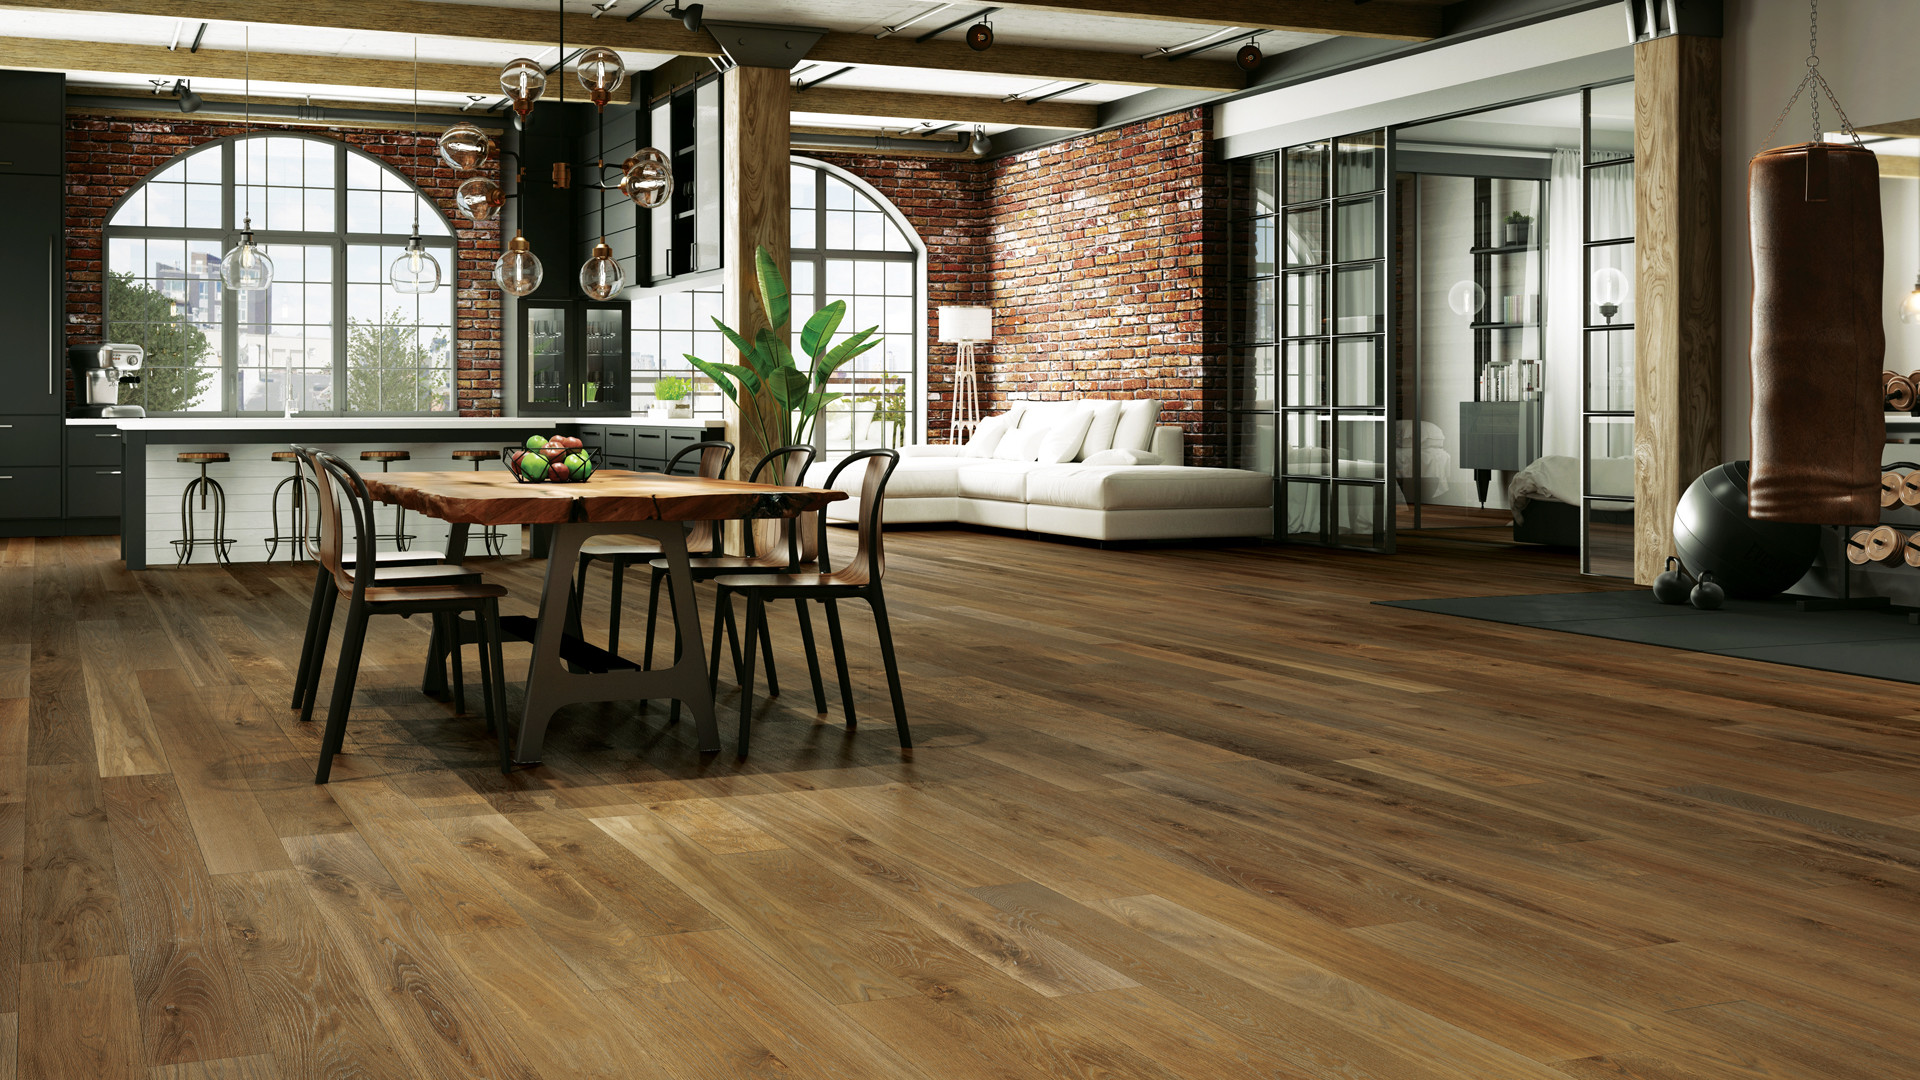 engineered hardwood flooring toronto of 4 latest hardwood flooring trends of 2018 lauzon flooring inside combined with a wire brushed texture and an ultra matte sheen these new 7a½ wide white oak hardwood floors will definitely add character to your home